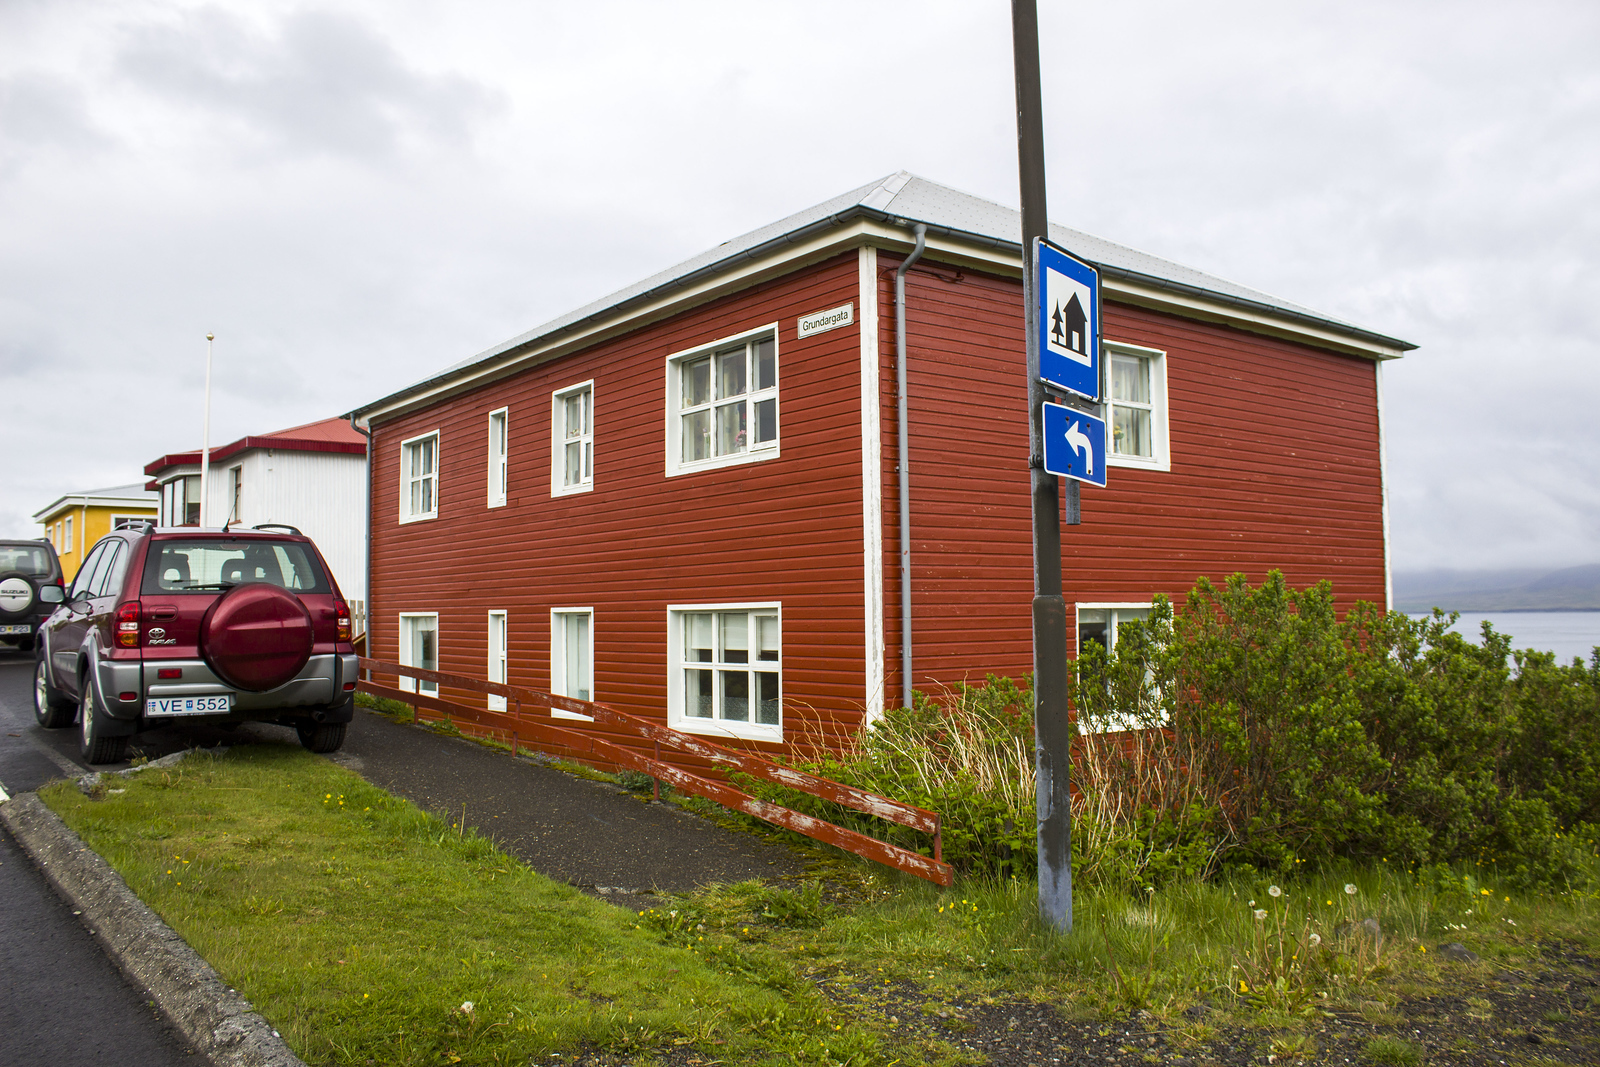 G4 Apartment Grundarfjordur Iceland - Place to stay in Snaefellsnes Peninsula